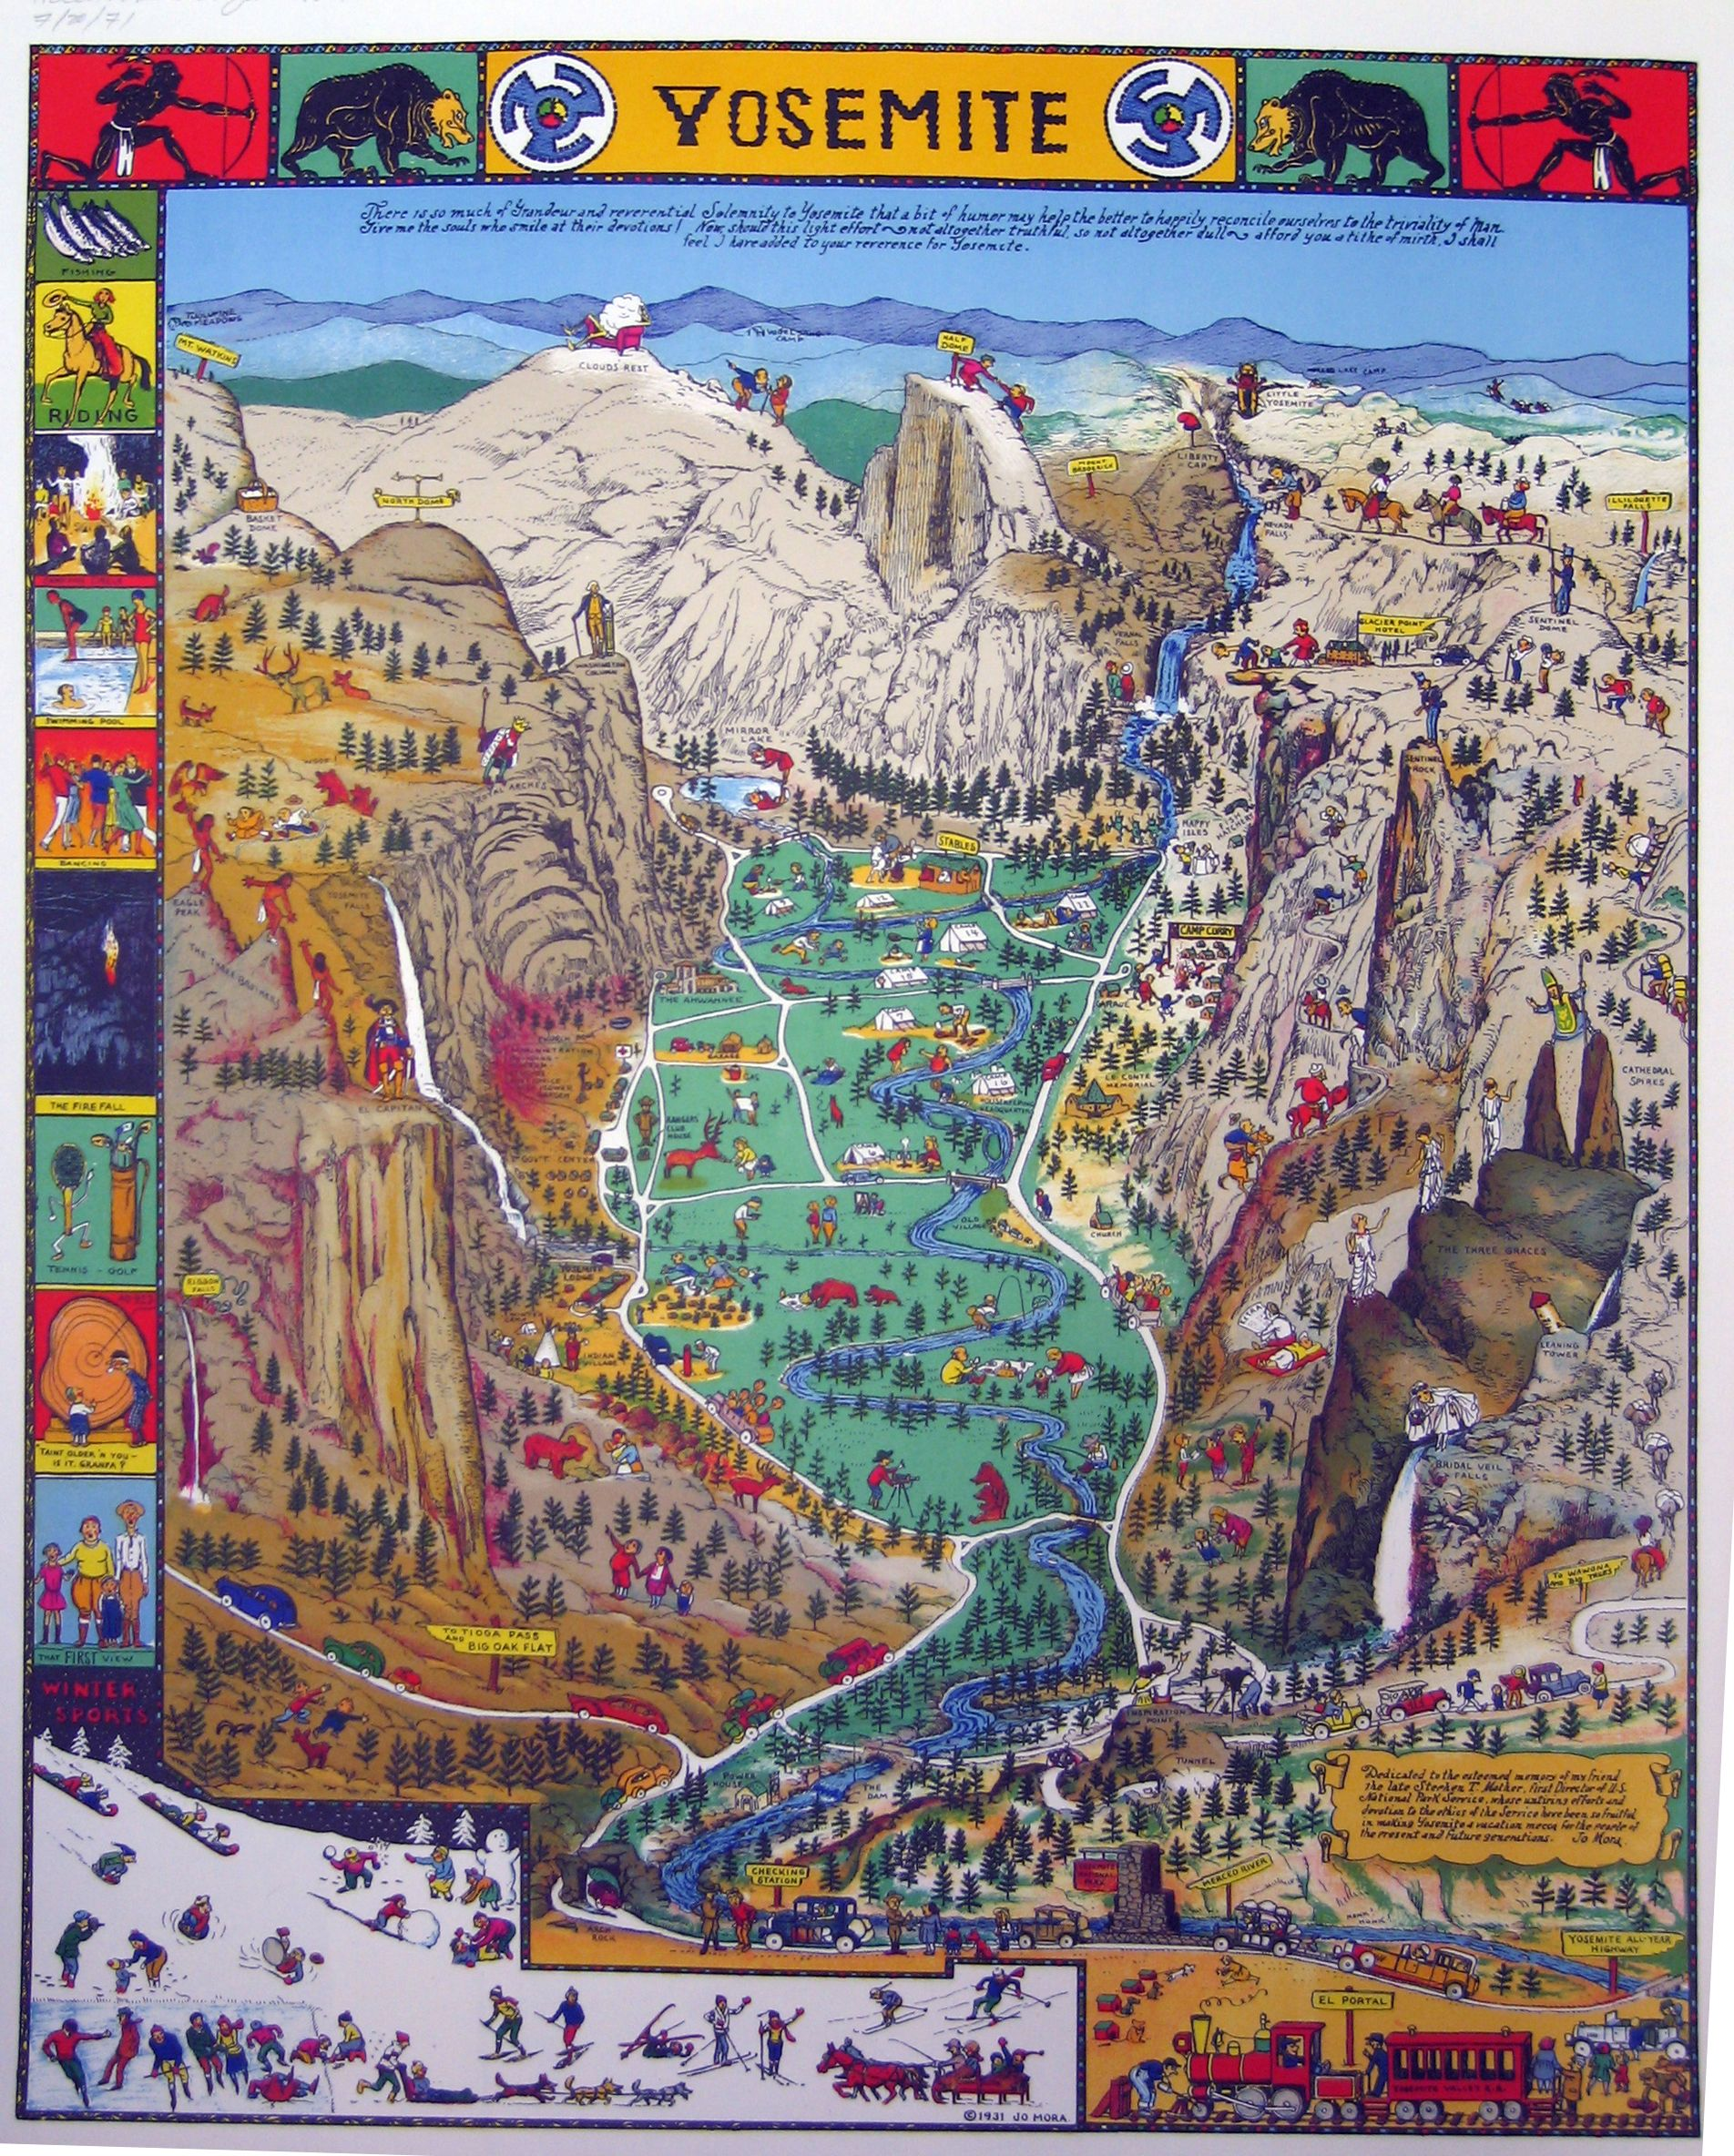 yosemite maps – Yosemite Tourist Map